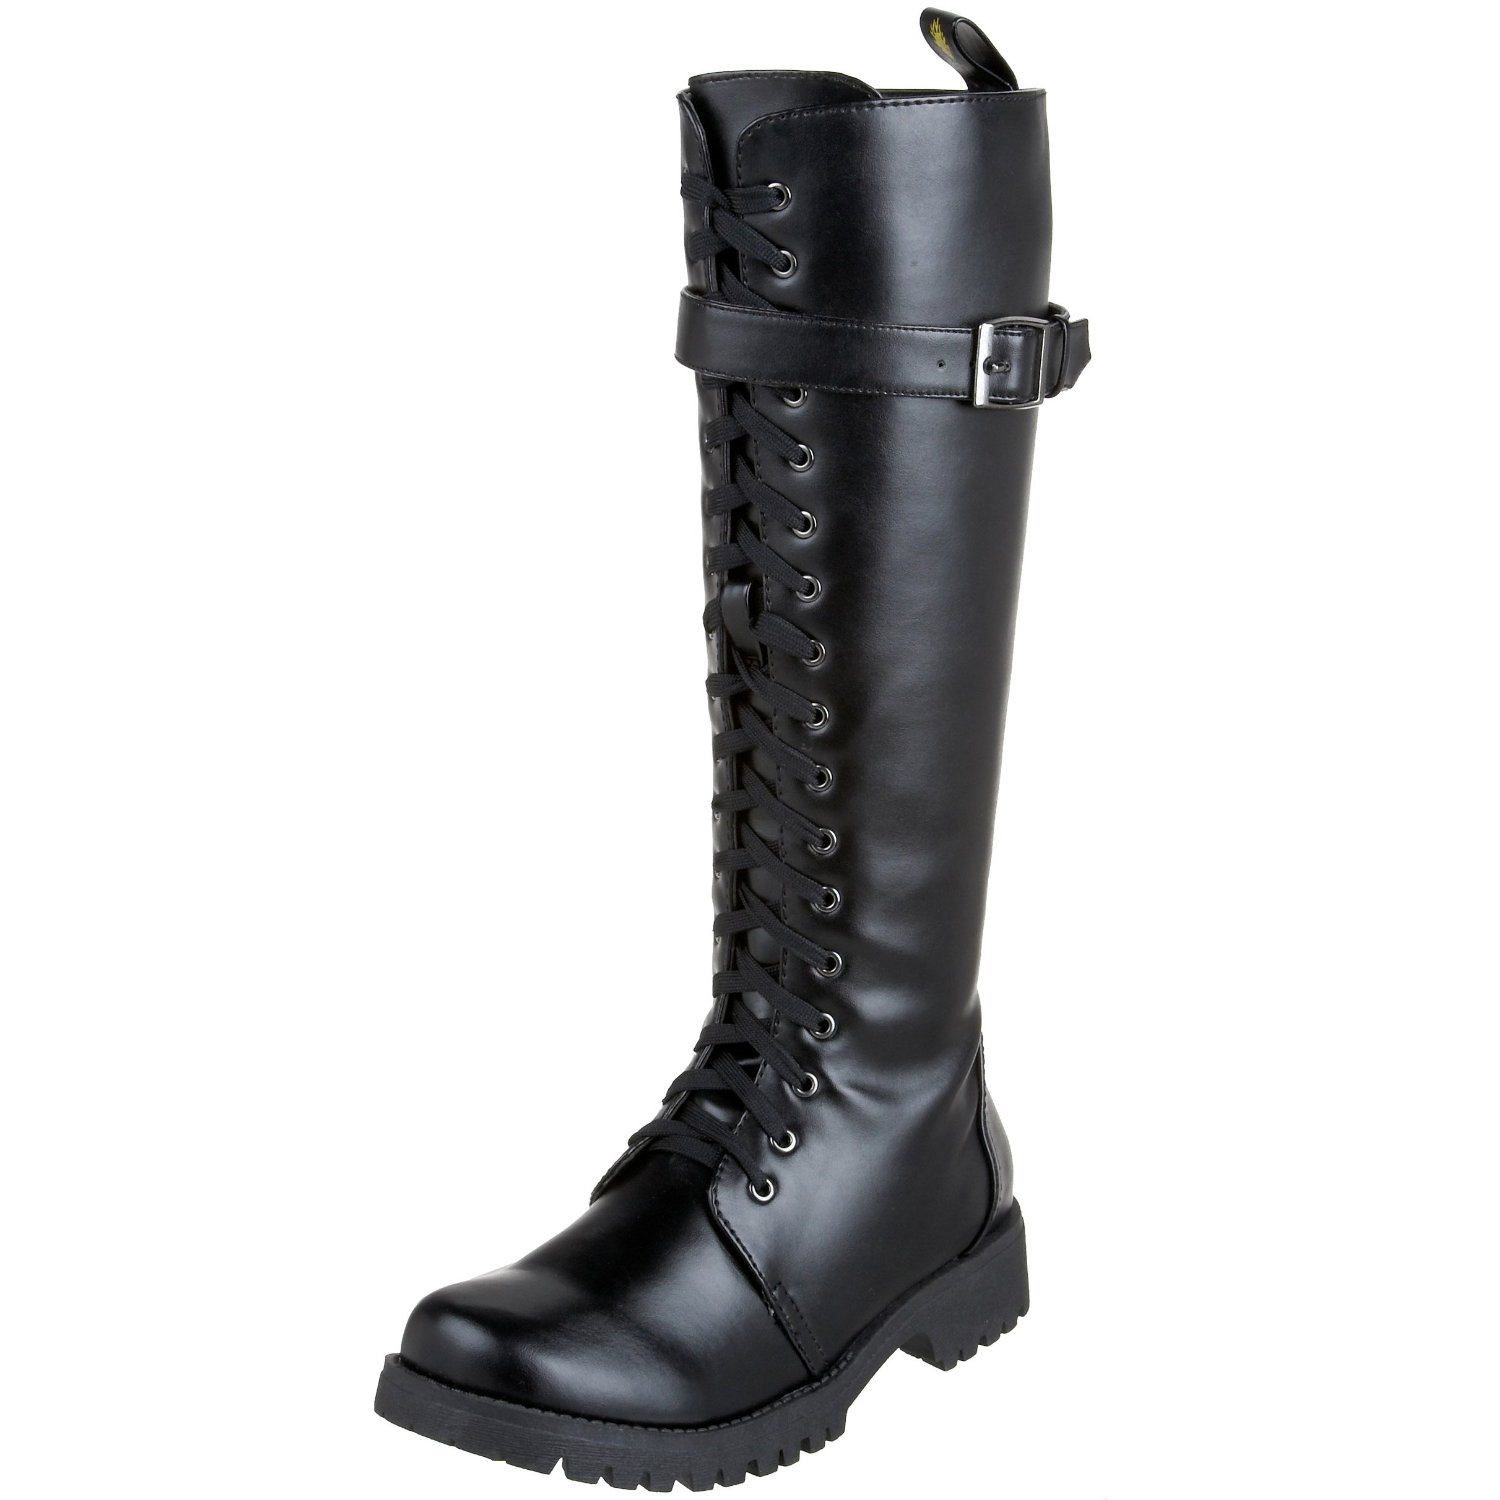 Beautiful Military Shoes Military Army Women S Combat Boots Black Women Lace Up